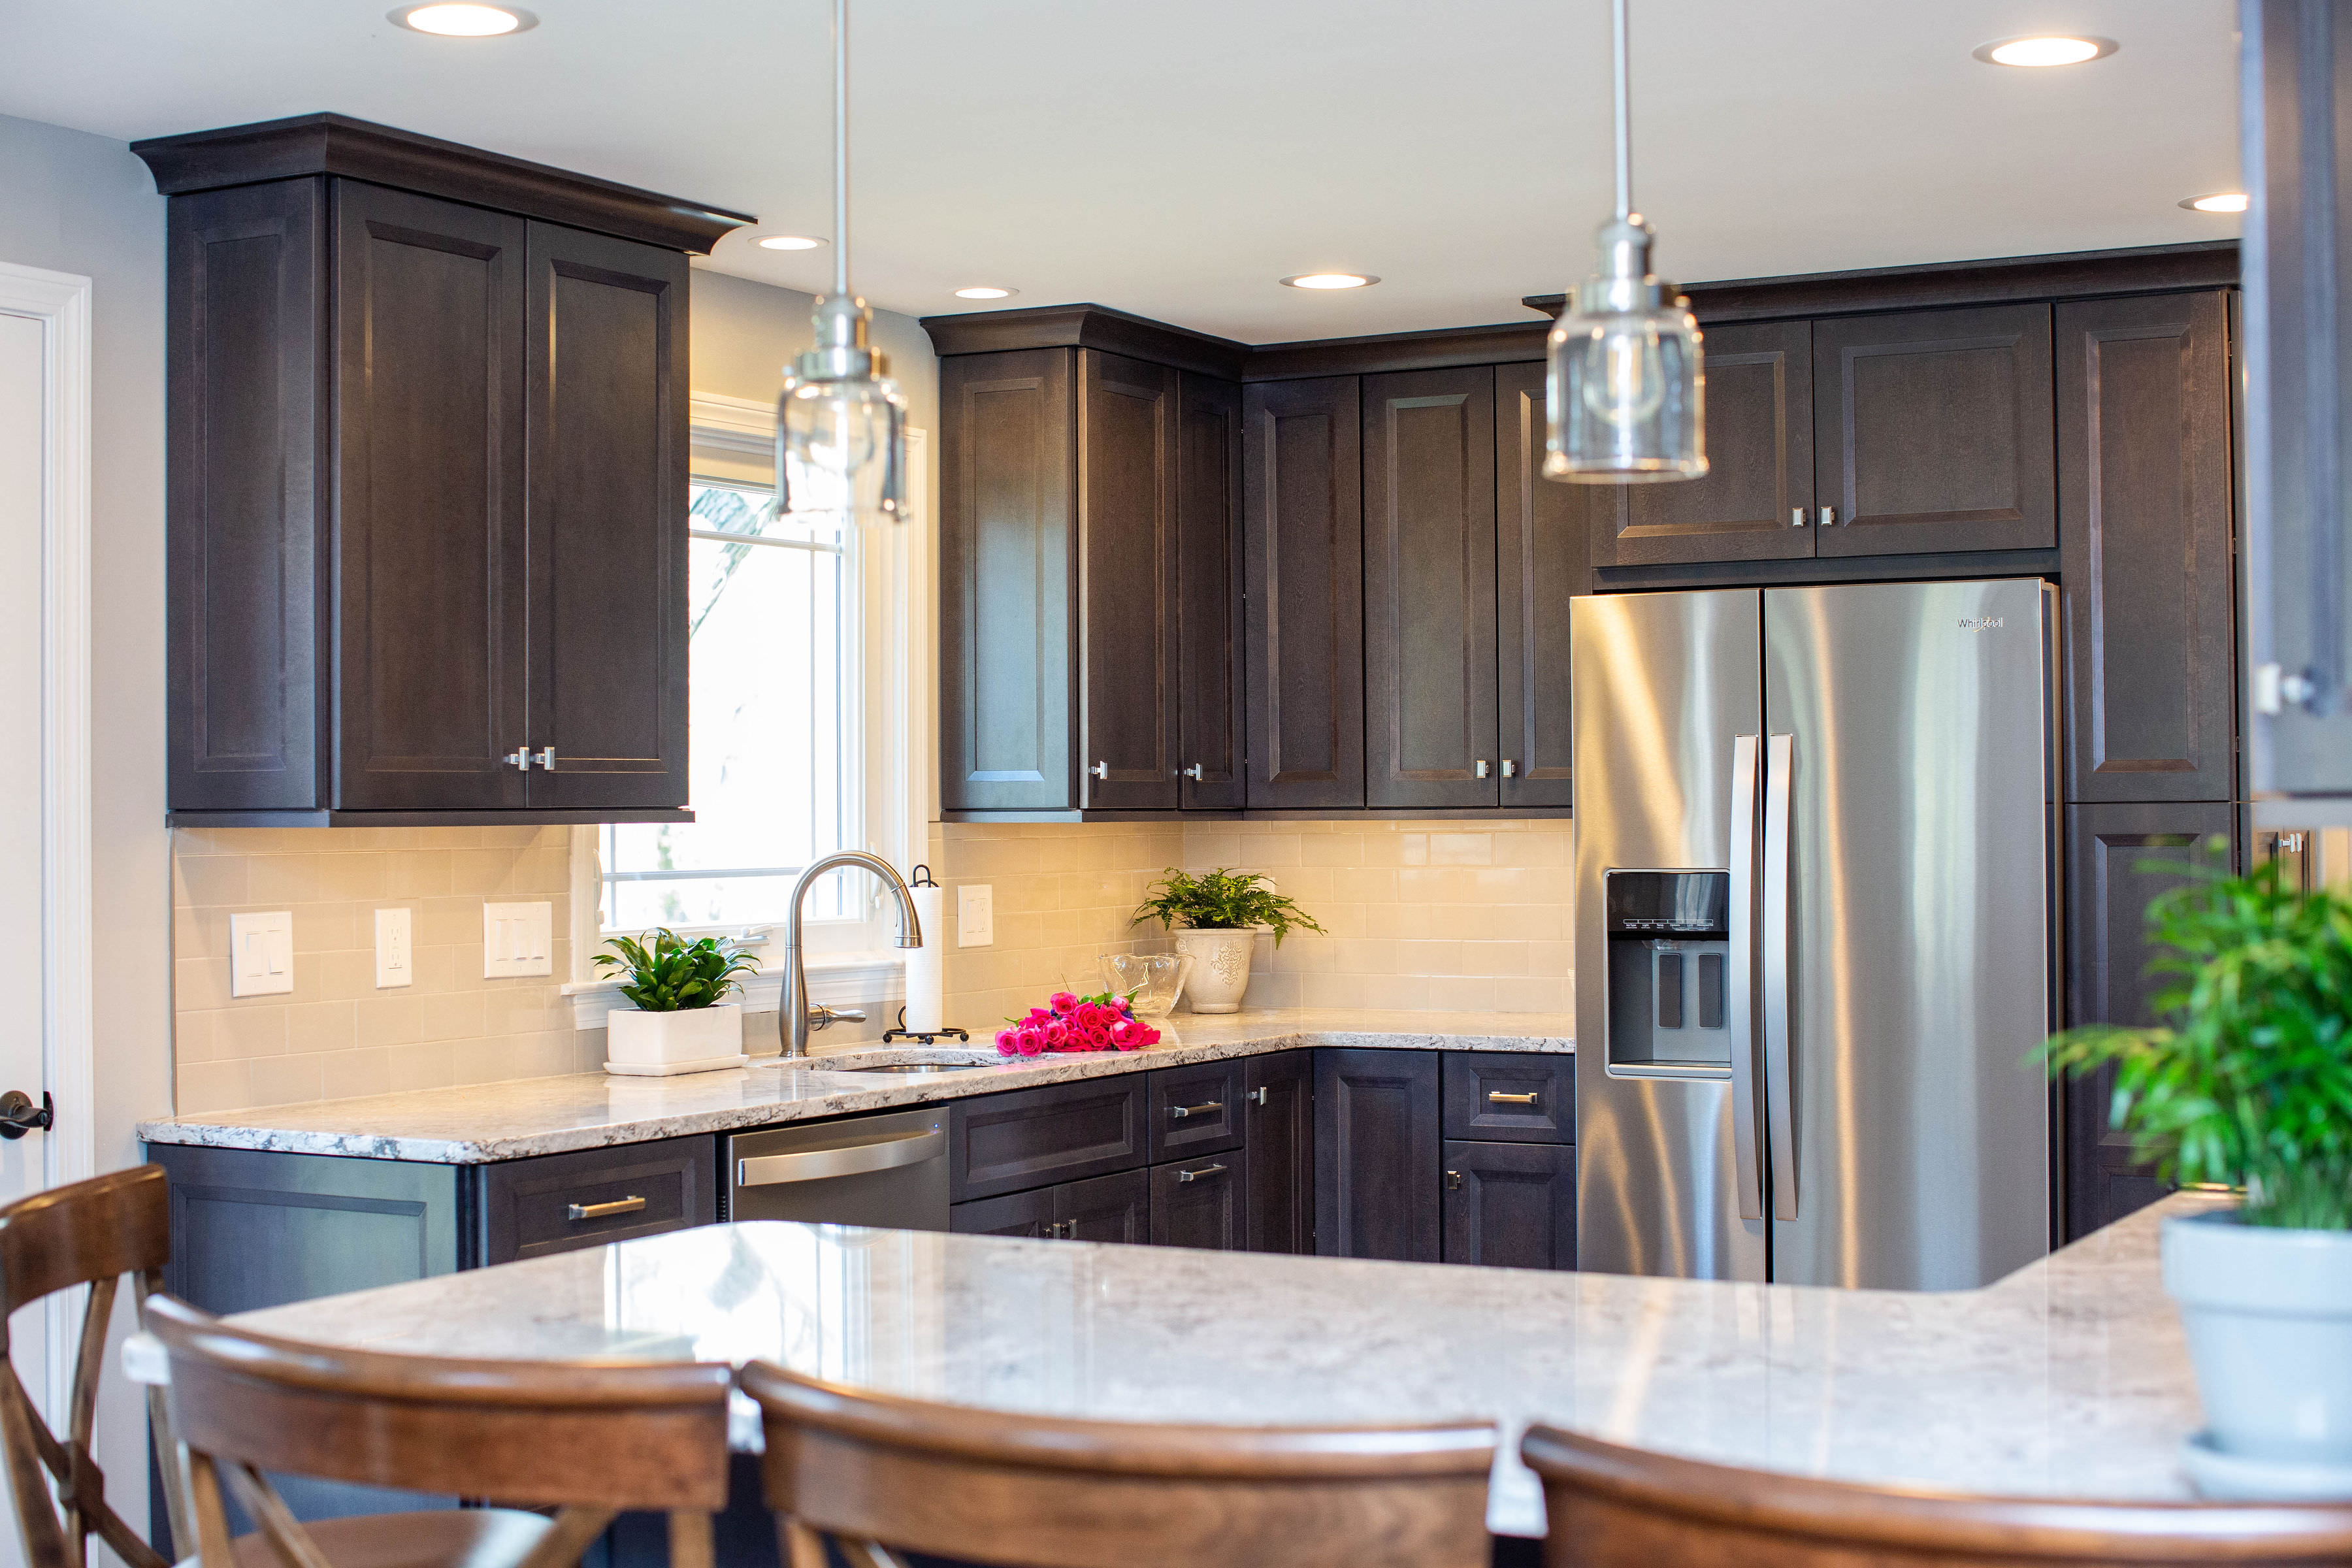 The Inspired Kitchen Certified Design Remodeling Glastonbury